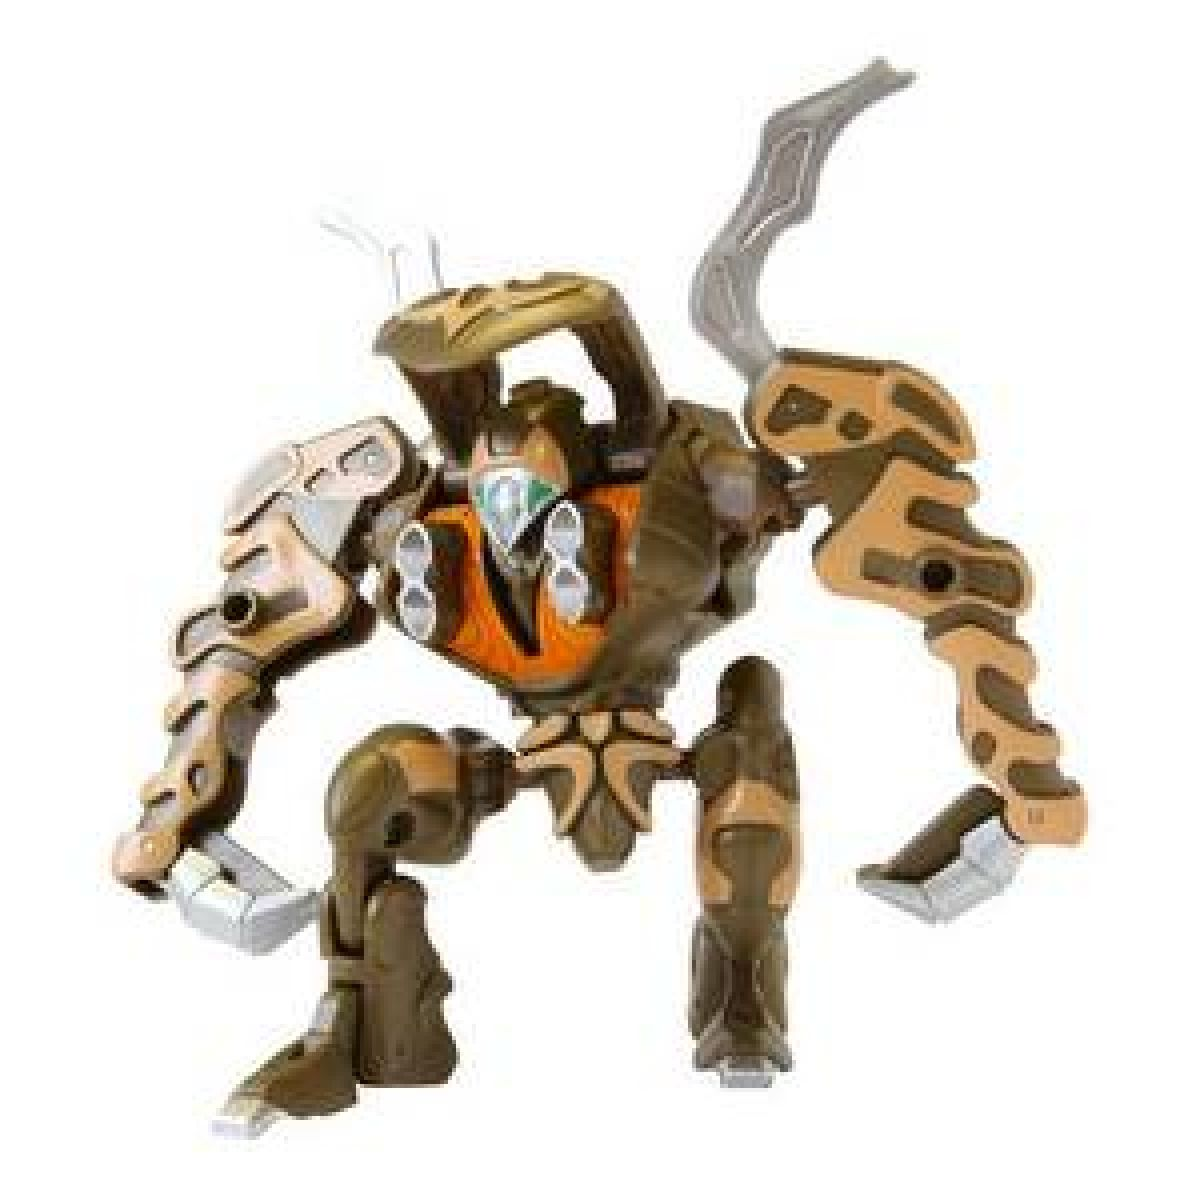 BAKUGAN 4 Mechtogan 17 Exostriker